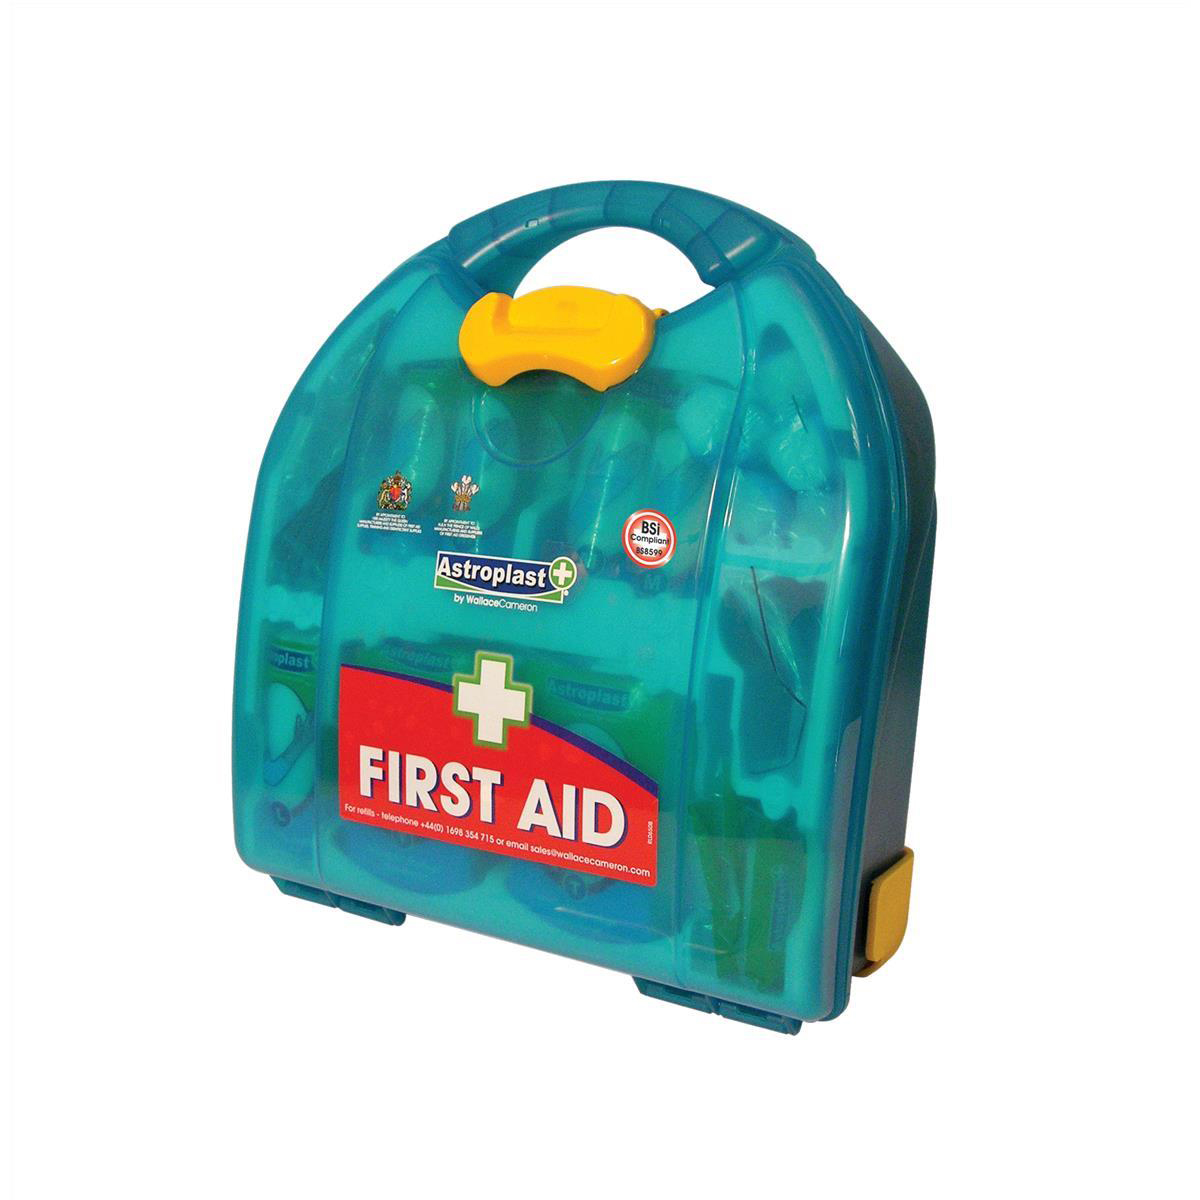 Wallace Cameron BS8599-1 Medium First Aid Kit 1-20 Users Ref 1002656 Promo